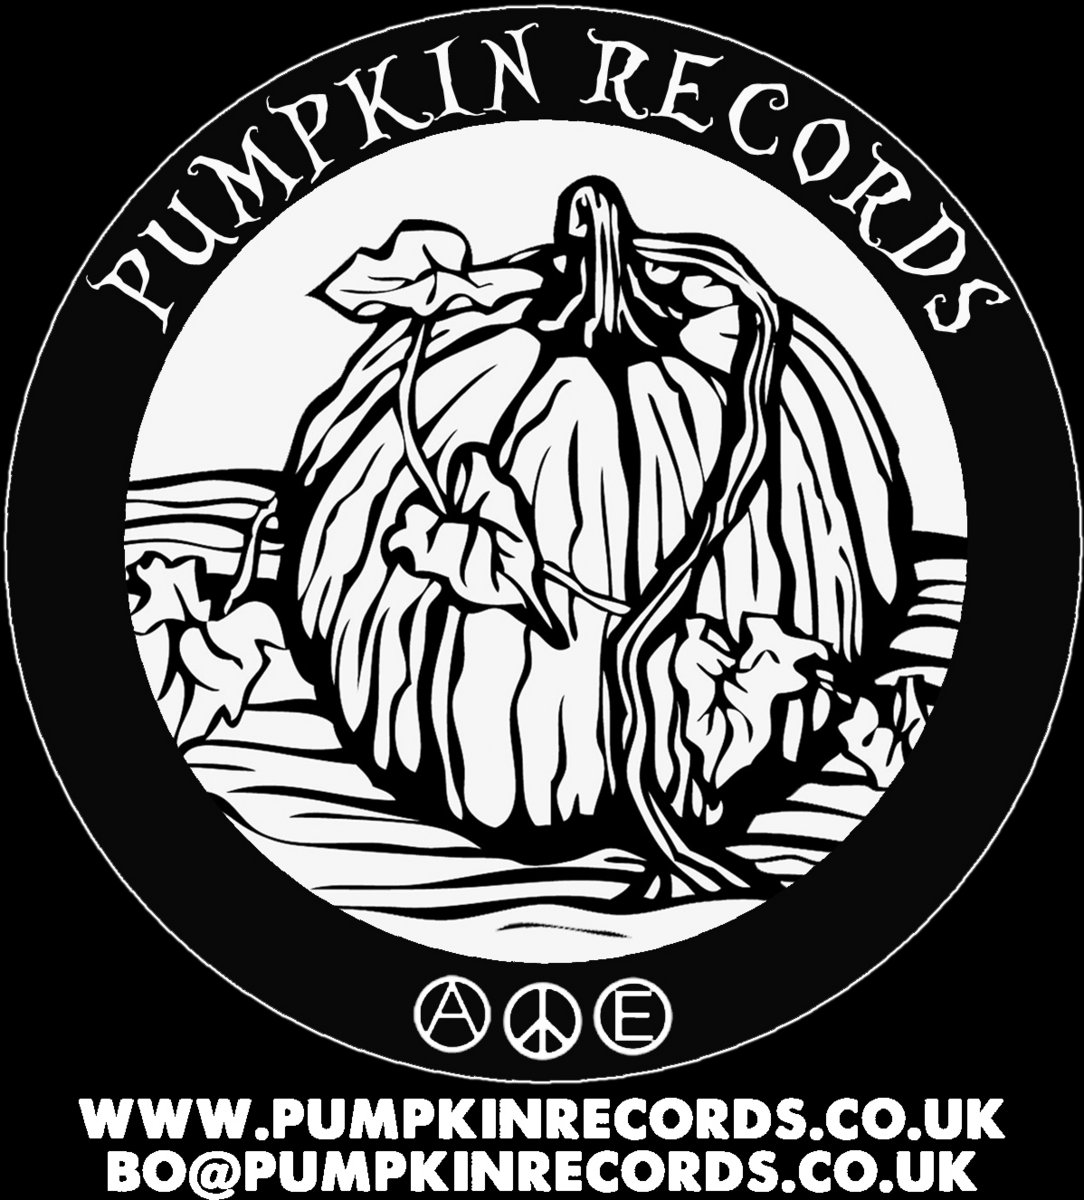 http://www.pumpkinrecords.co.uk/